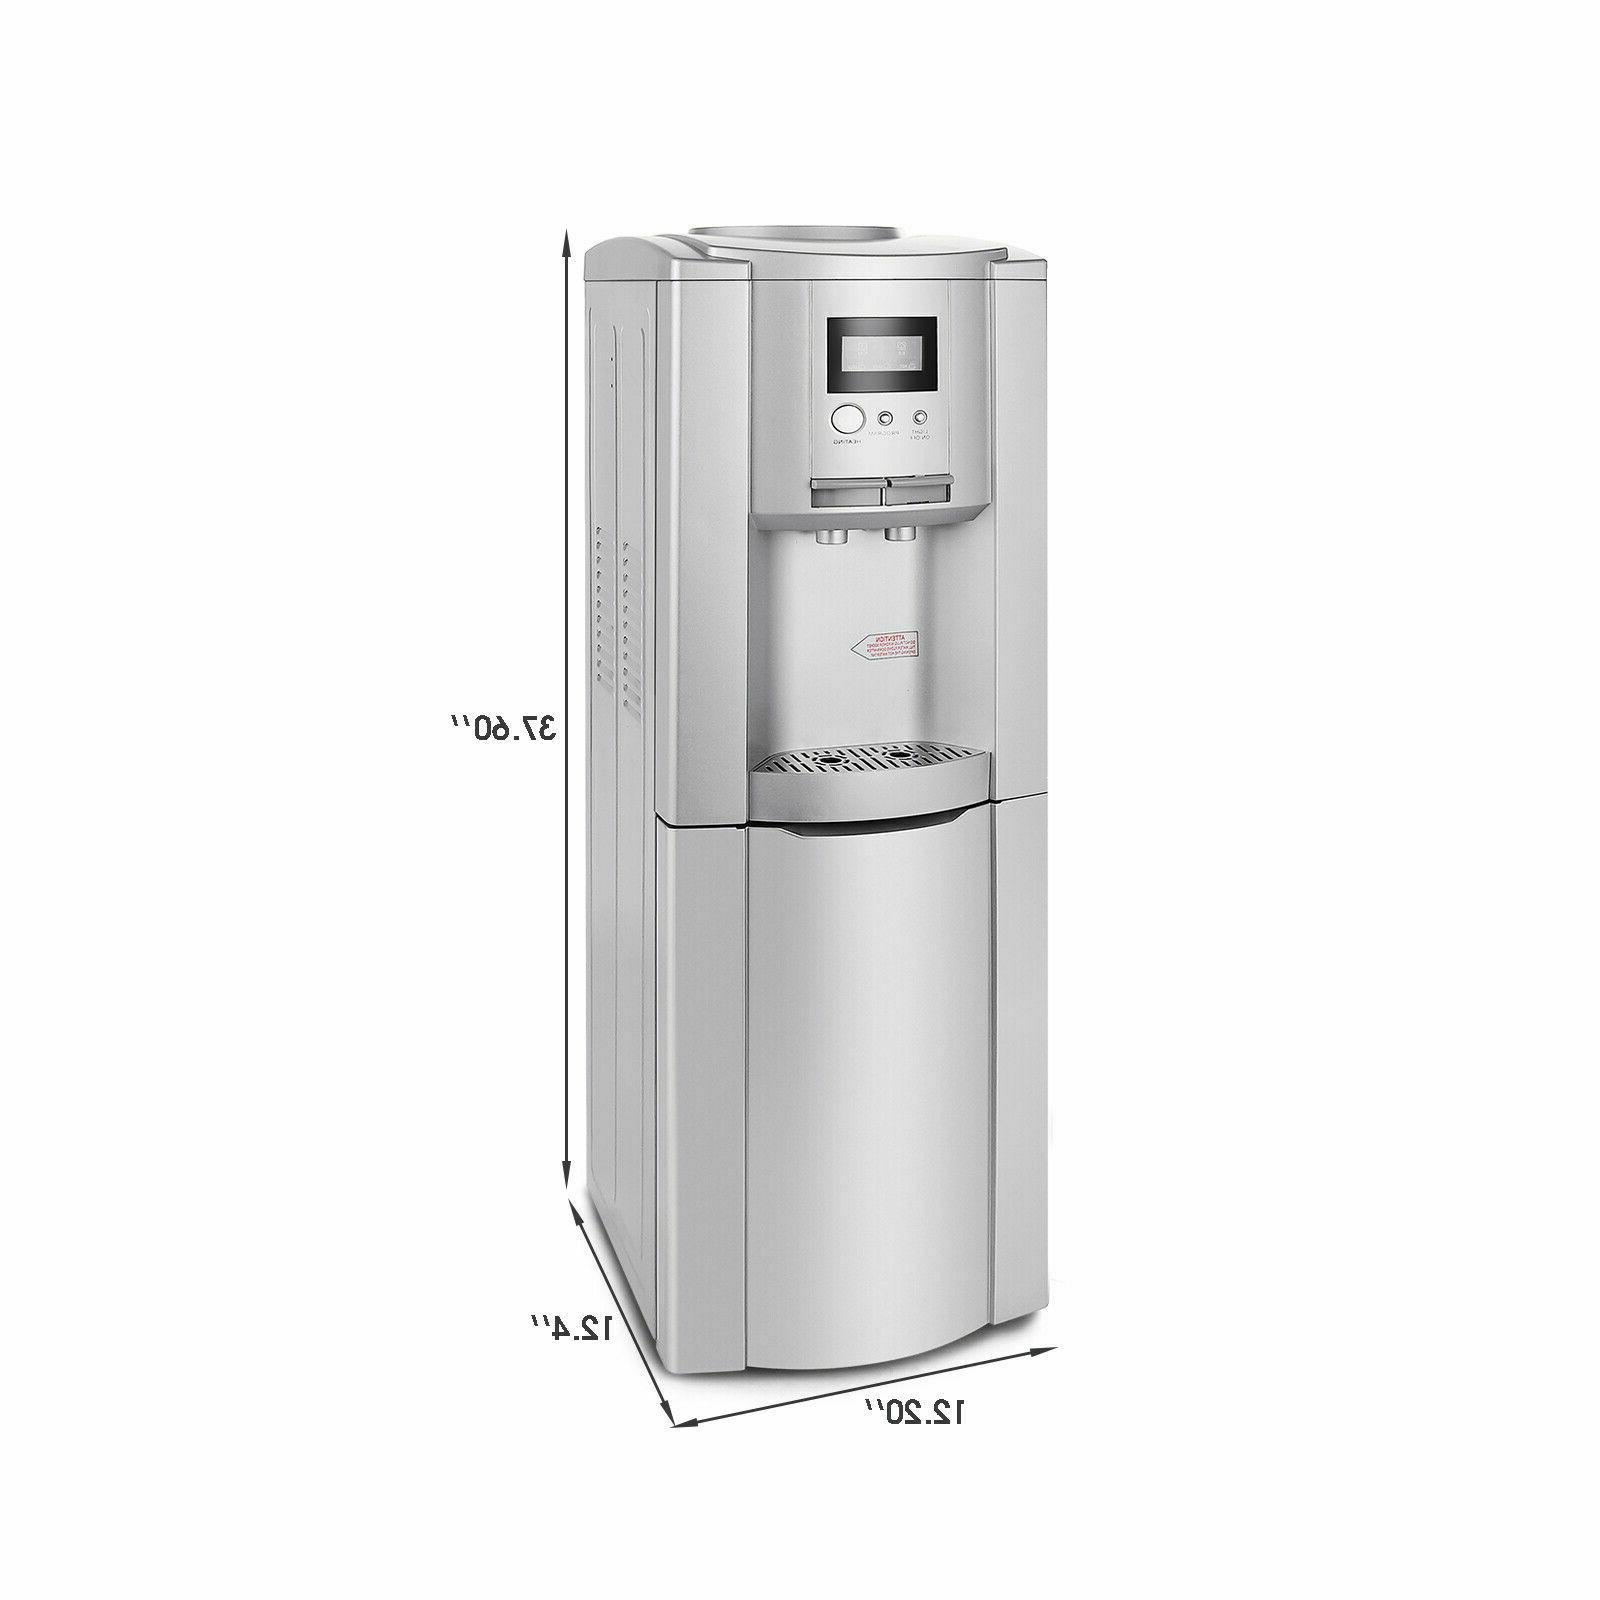 5 Water Dispenser Top Cabine Hot Cold Warm Water